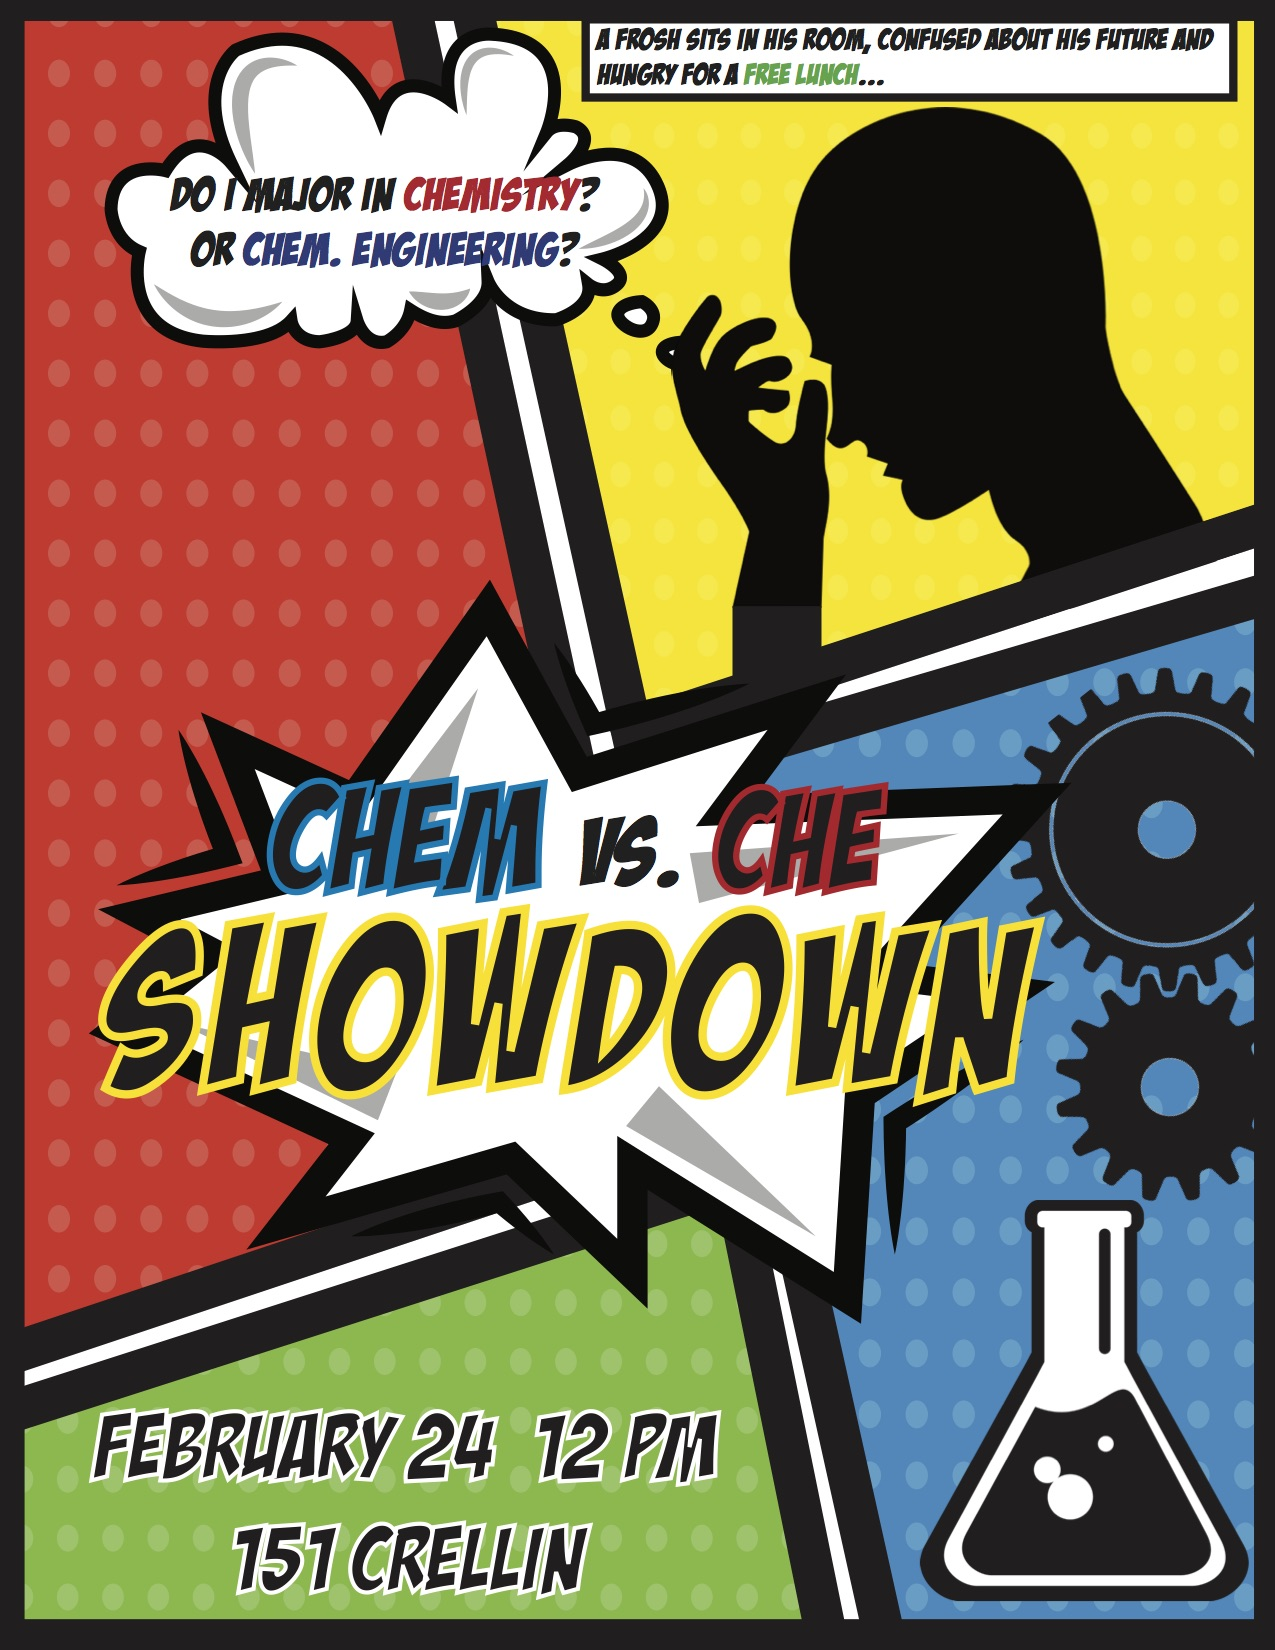 Chem/ChemE Showdown Flyer